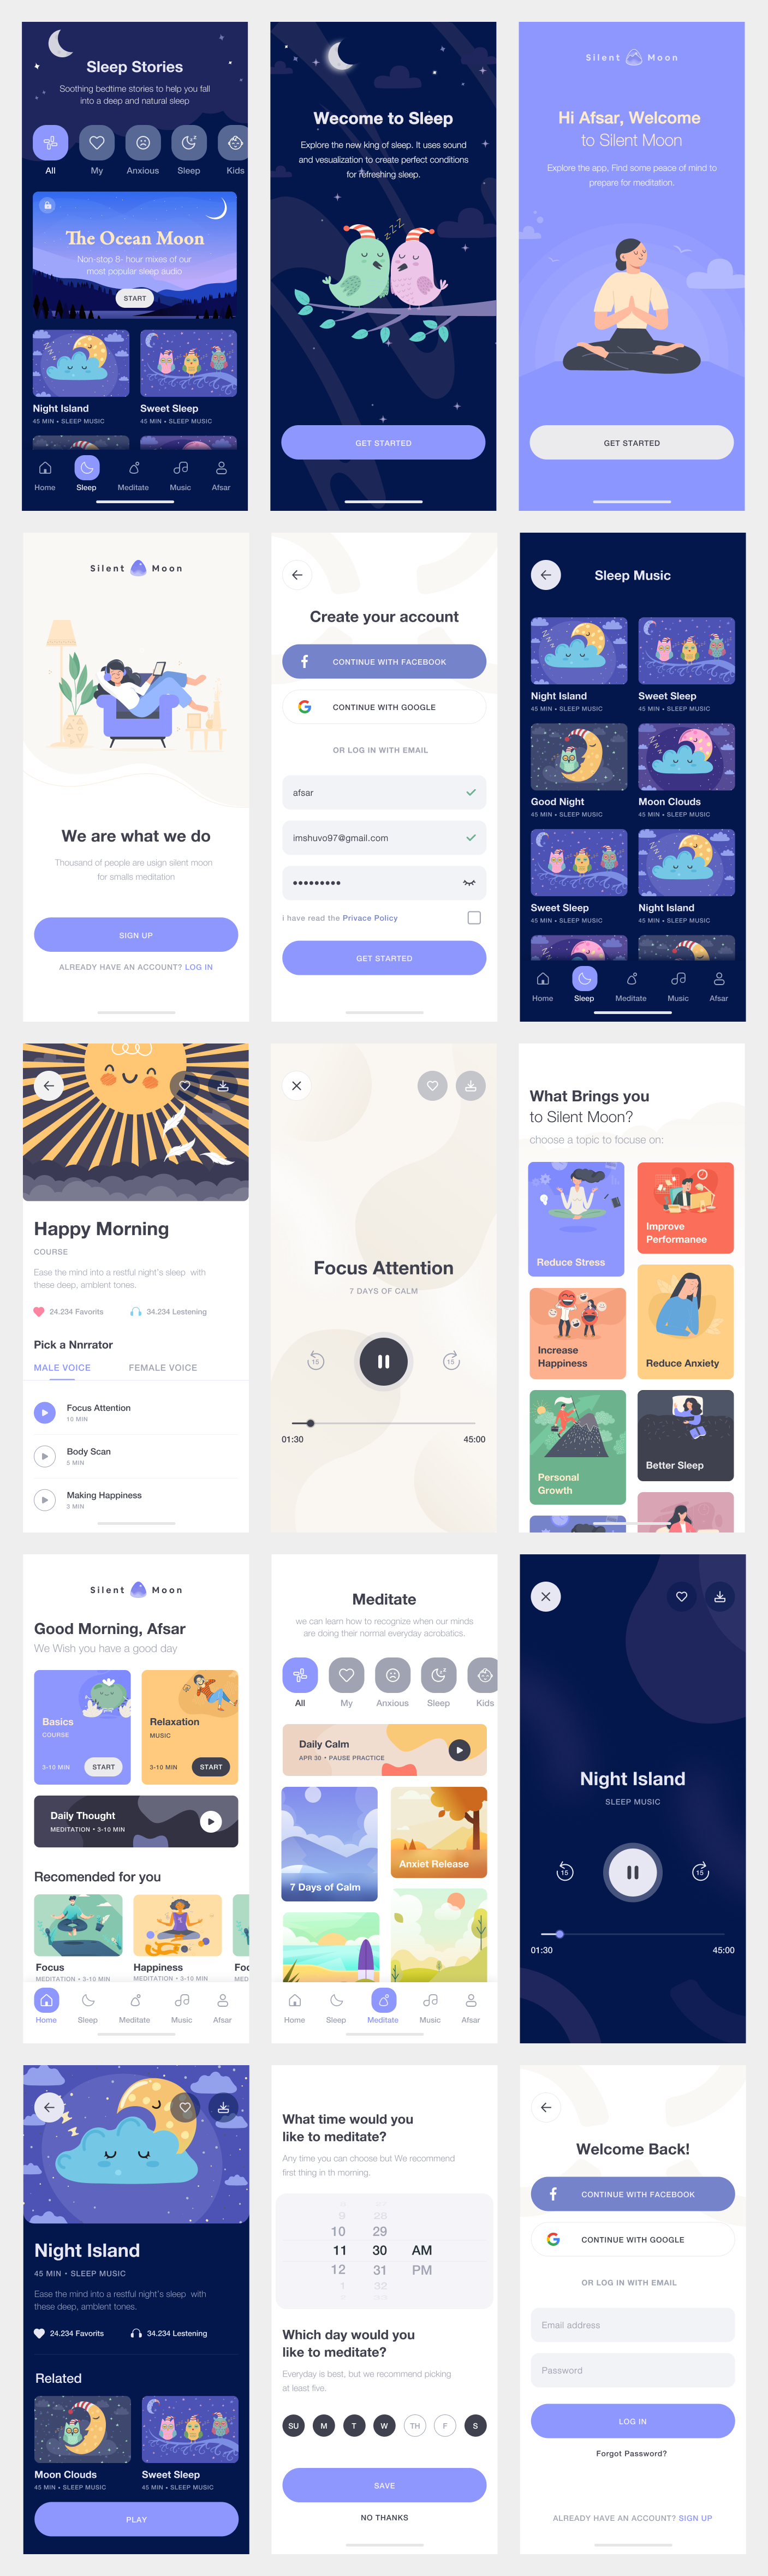 Meditation Free App UI Kit for Figma - Meditation helps you to recover your original, true mind. This grows the inner power. There are thousands of benefits from making your mind healthy. We are working on a great meditation app where you can meditate properly in a very comfortable way. Minimal and clean app design, 15+ screens for you to get started.